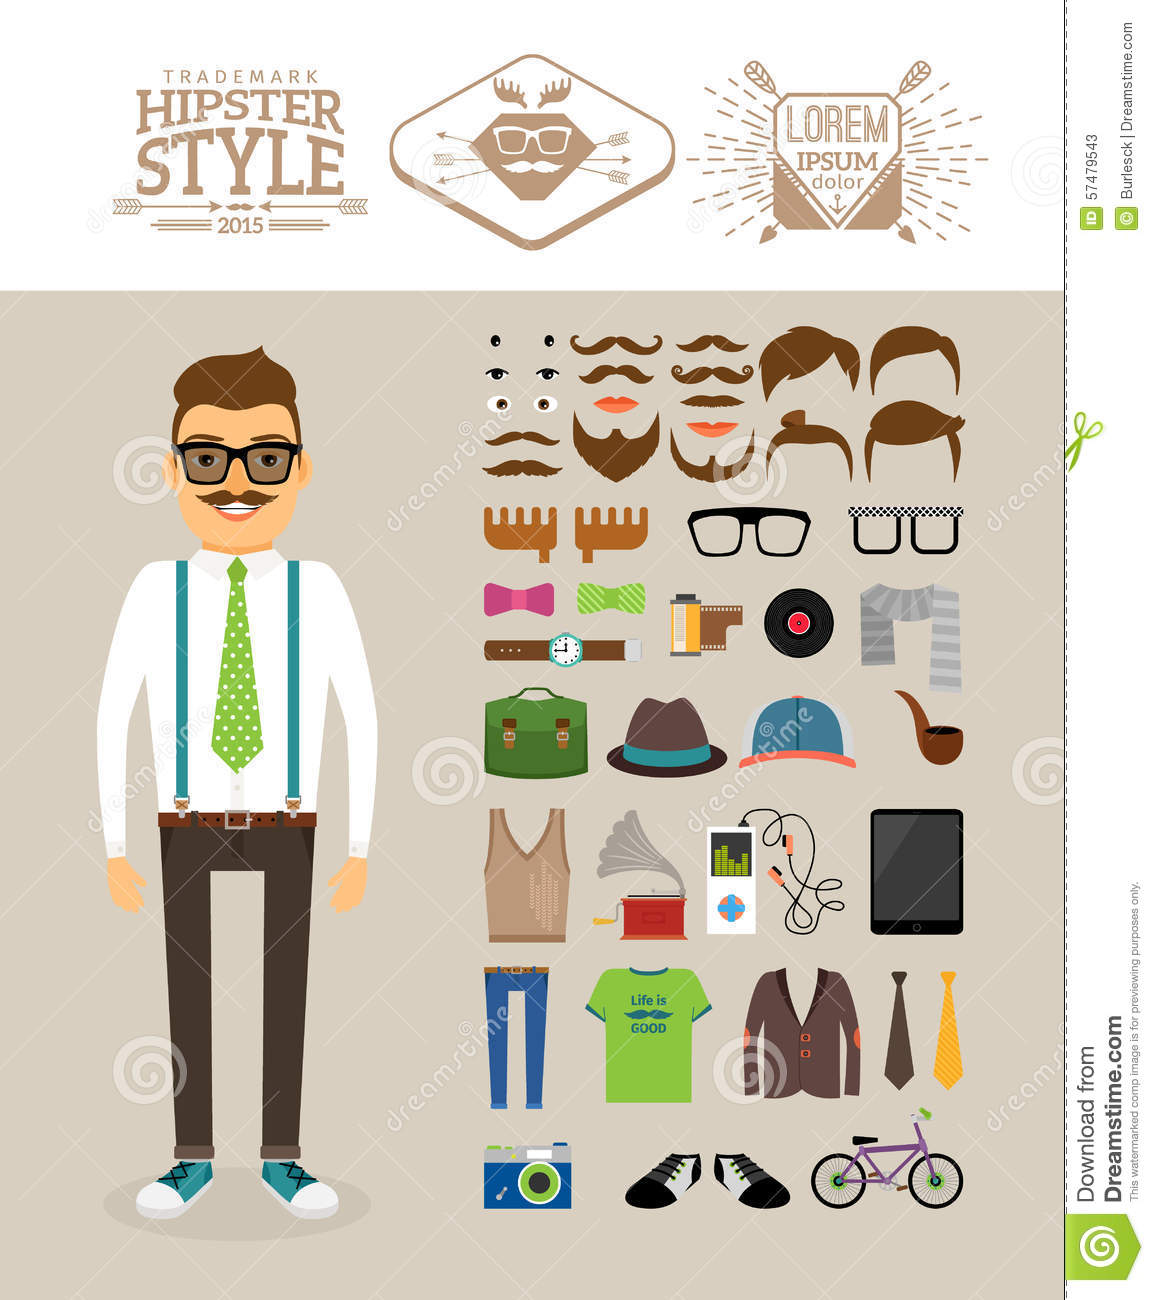 Retro Illustration Hipster Style Clothing Accessories